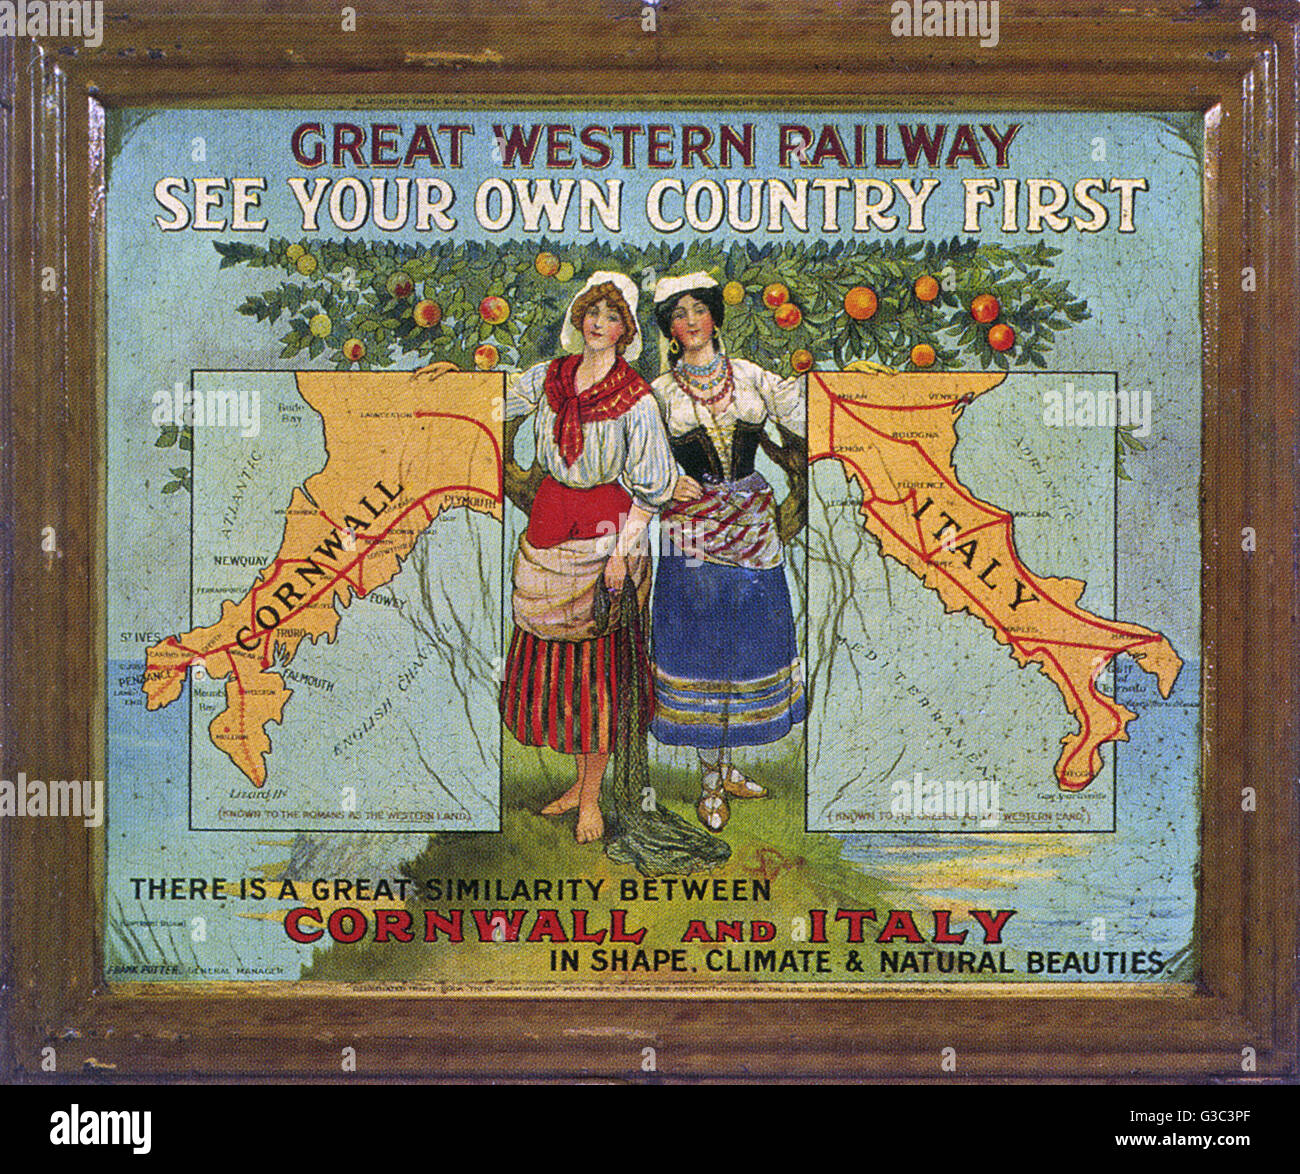 railway poster stockfotos railway poster bilder alamy. Black Bedroom Furniture Sets. Home Design Ideas